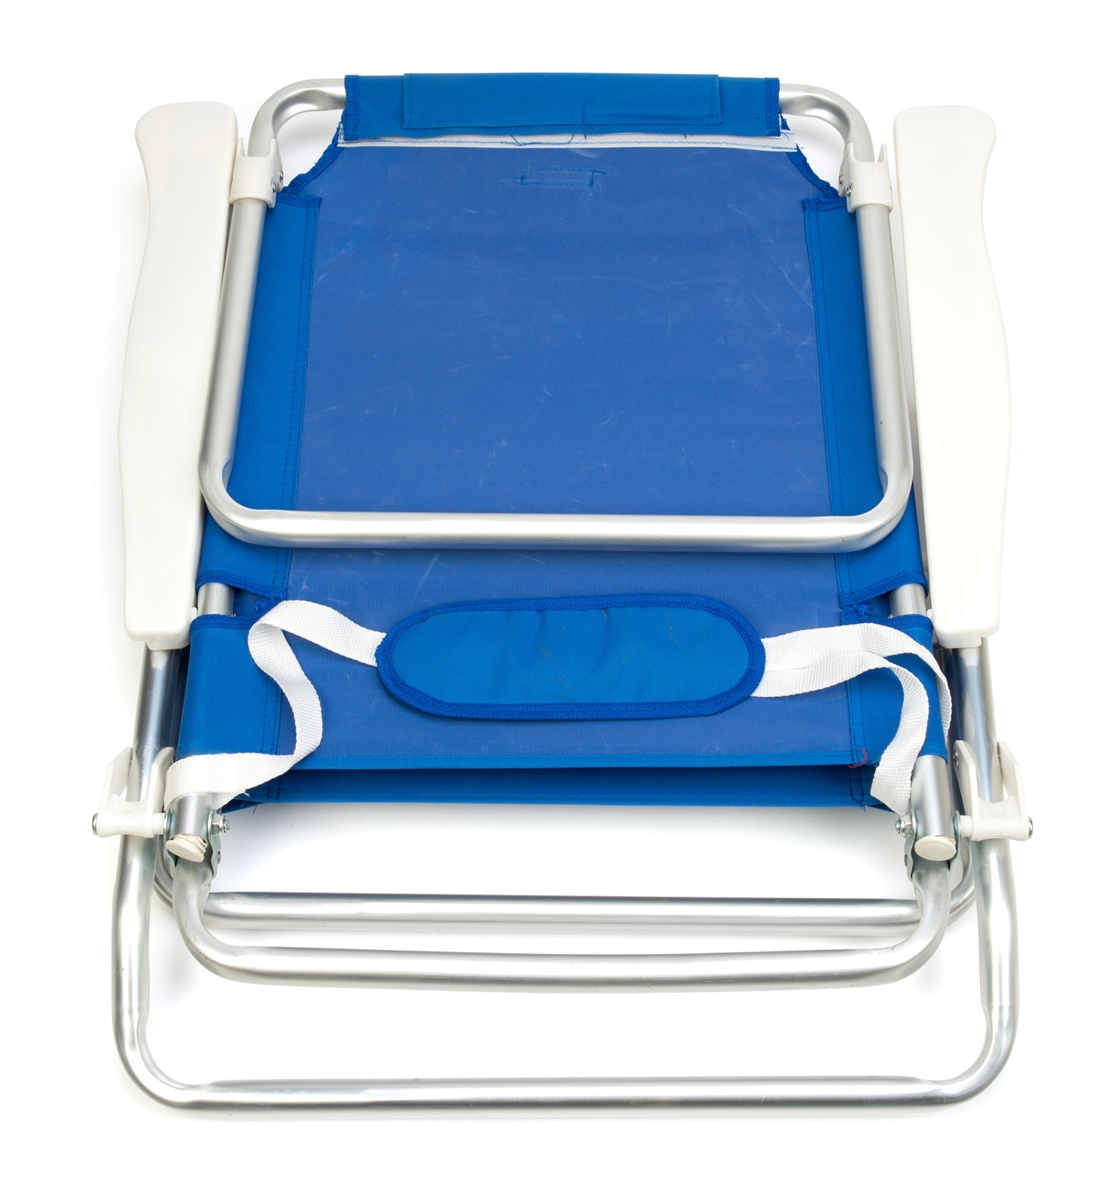 5 Position Aluminum Frame Beach Chair With Pillow By Trademark Innovations  (Blue)